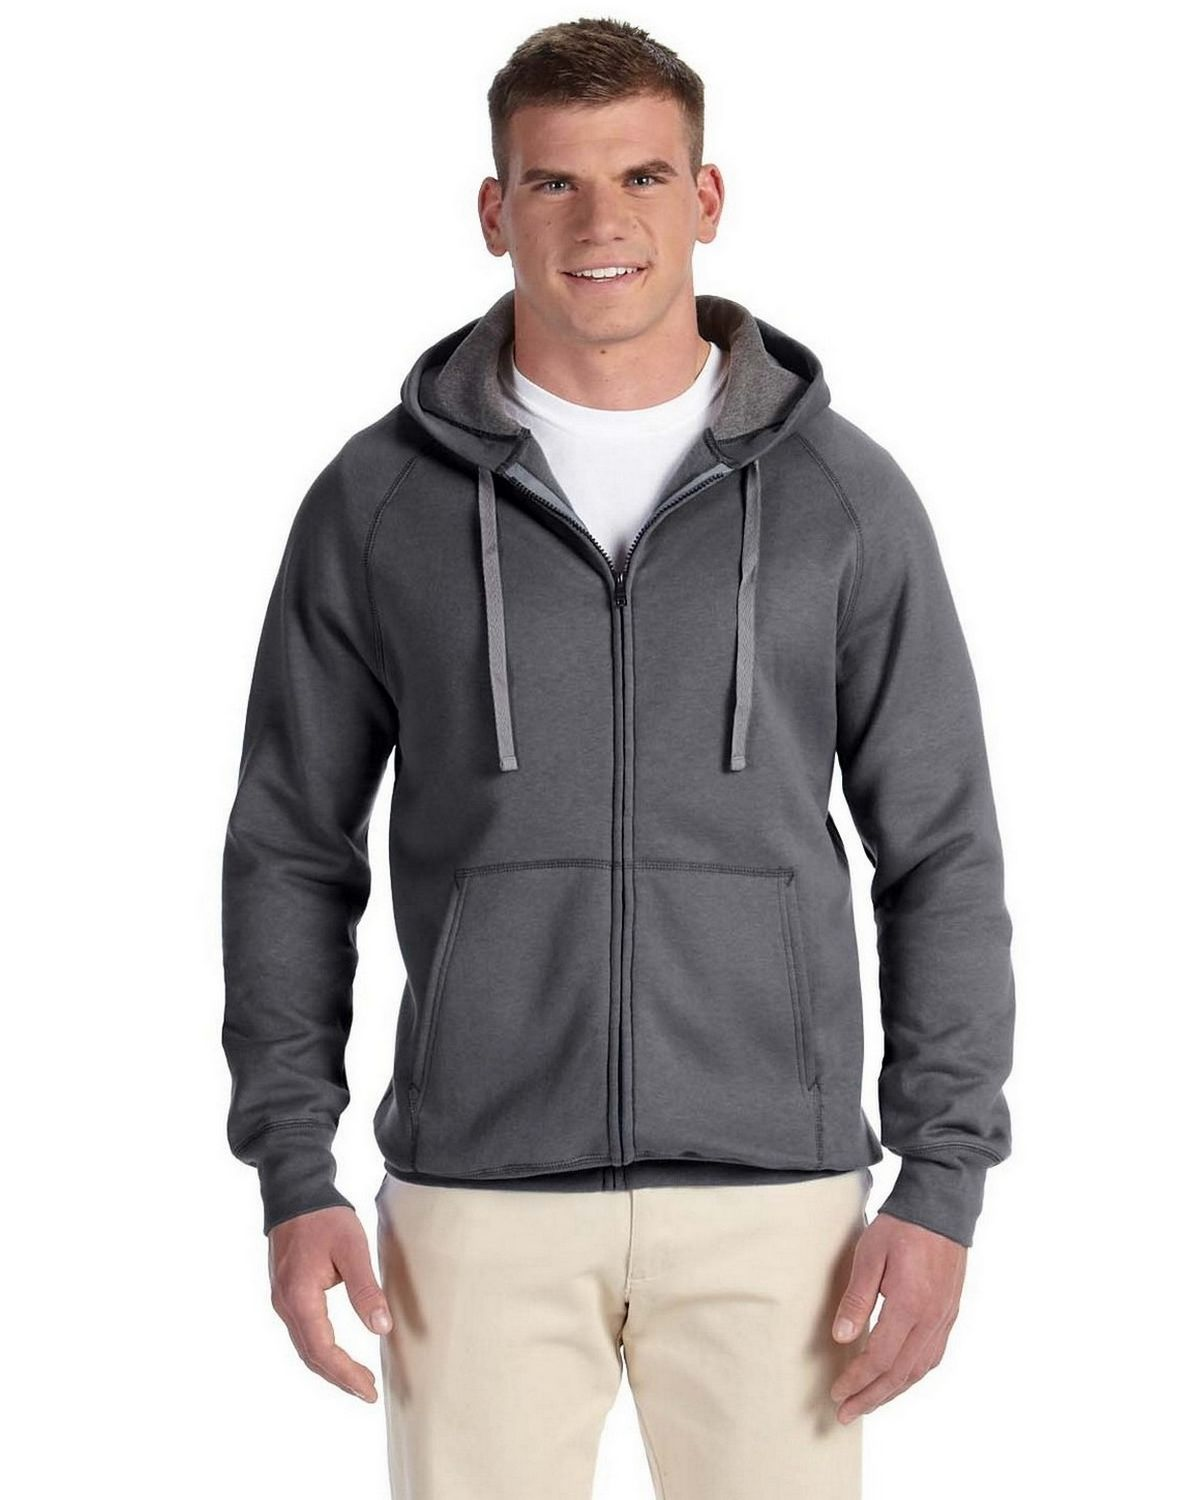 Hanes N280 Nano Full Zip Hoodie Sweatshirt - Charcoal Heather - L N280